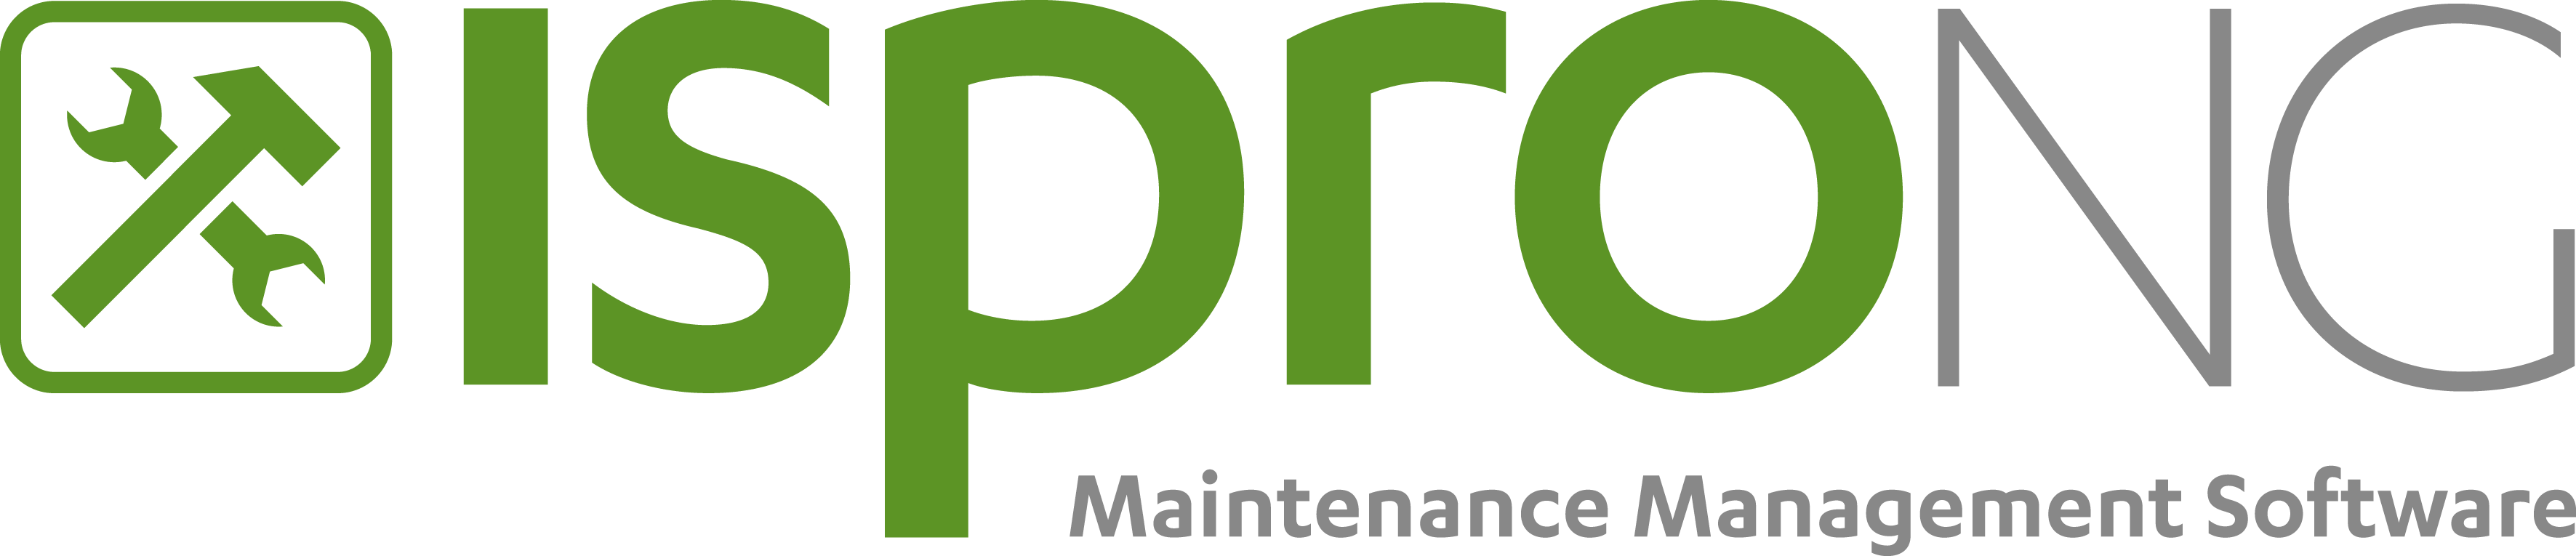 Logo isproNG Maintenance Management Software